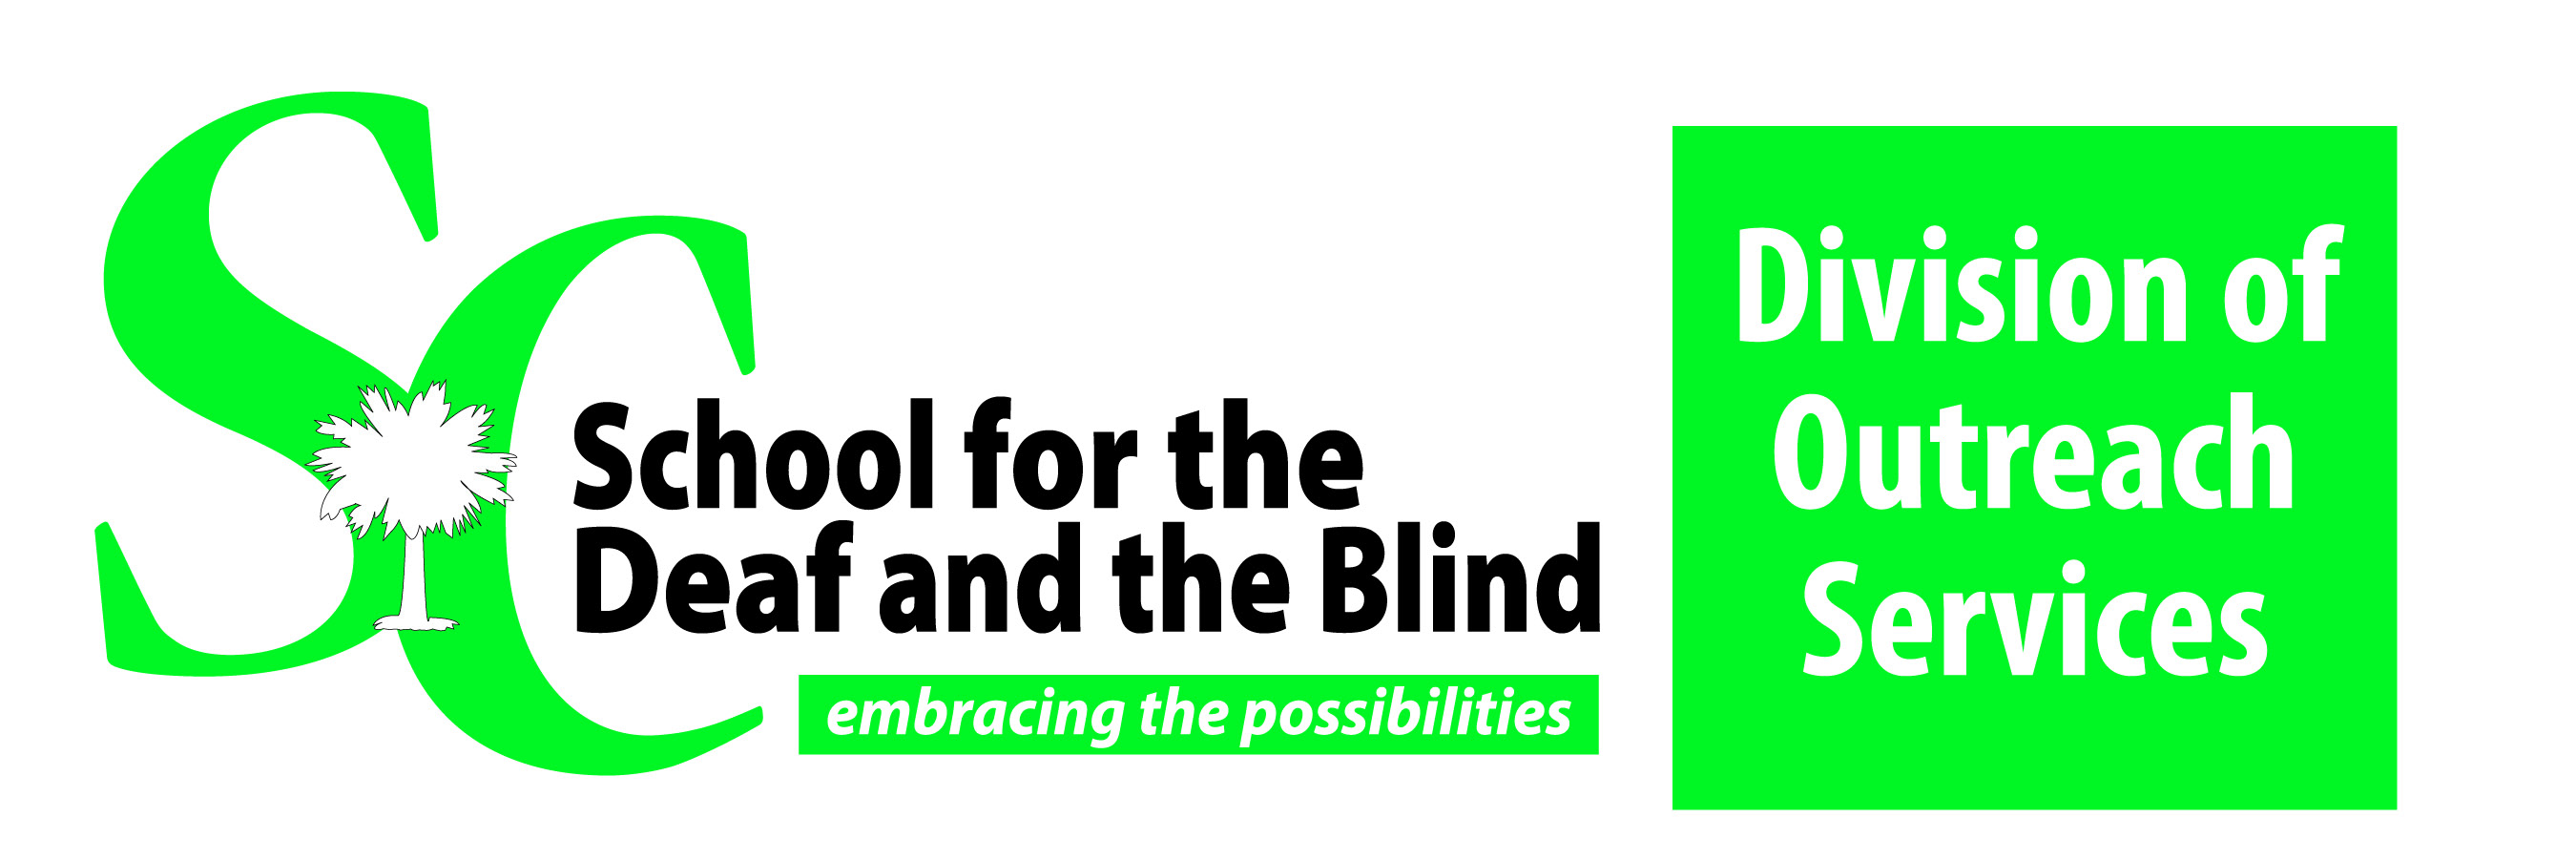 SC School for the Deaf and the Blind Division of Outreach Services Logo